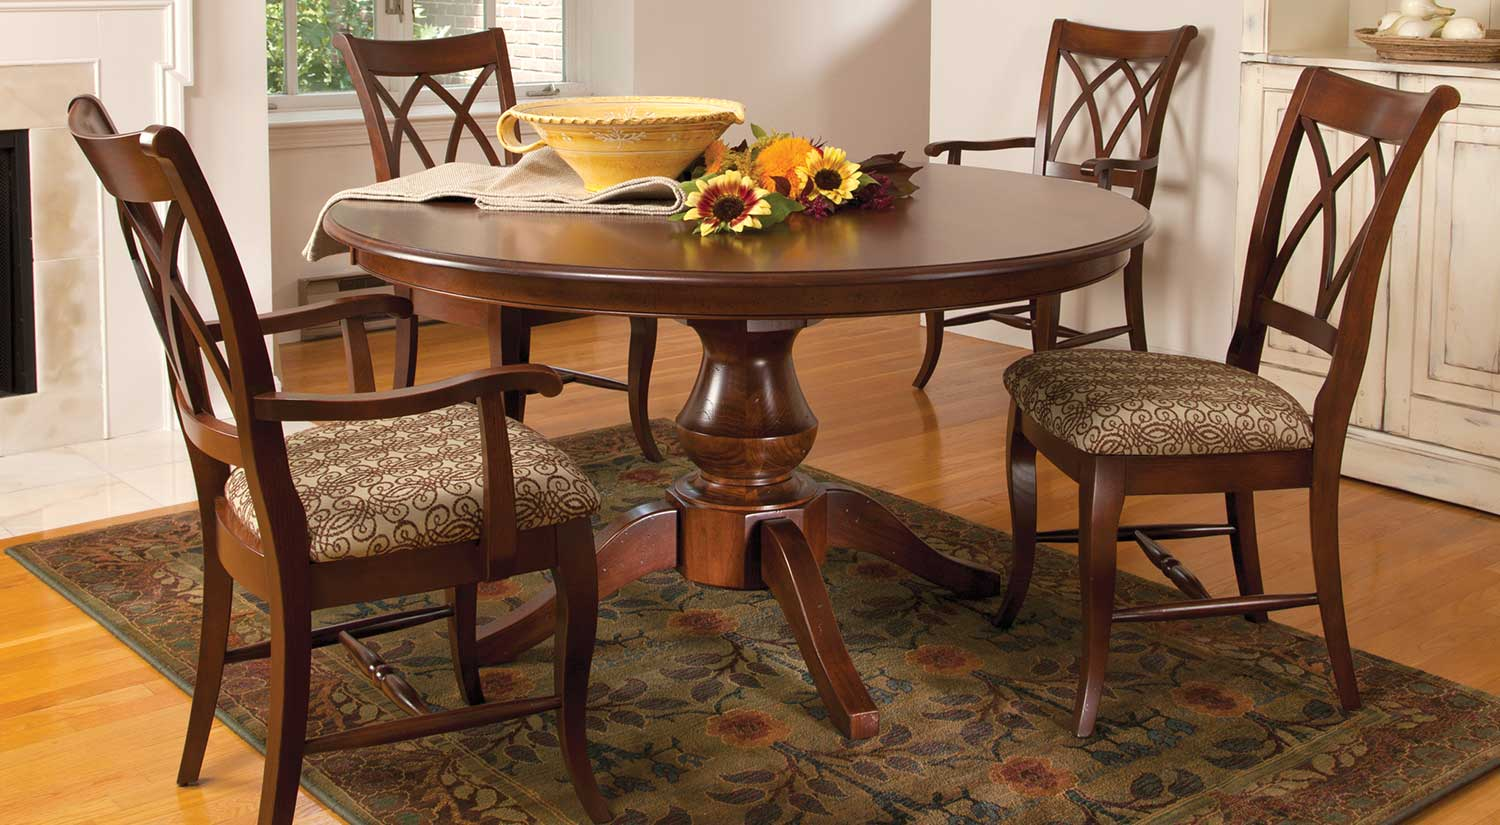 Circle Furniture - Woodstock Table | Dining Tables MA | Circle ...